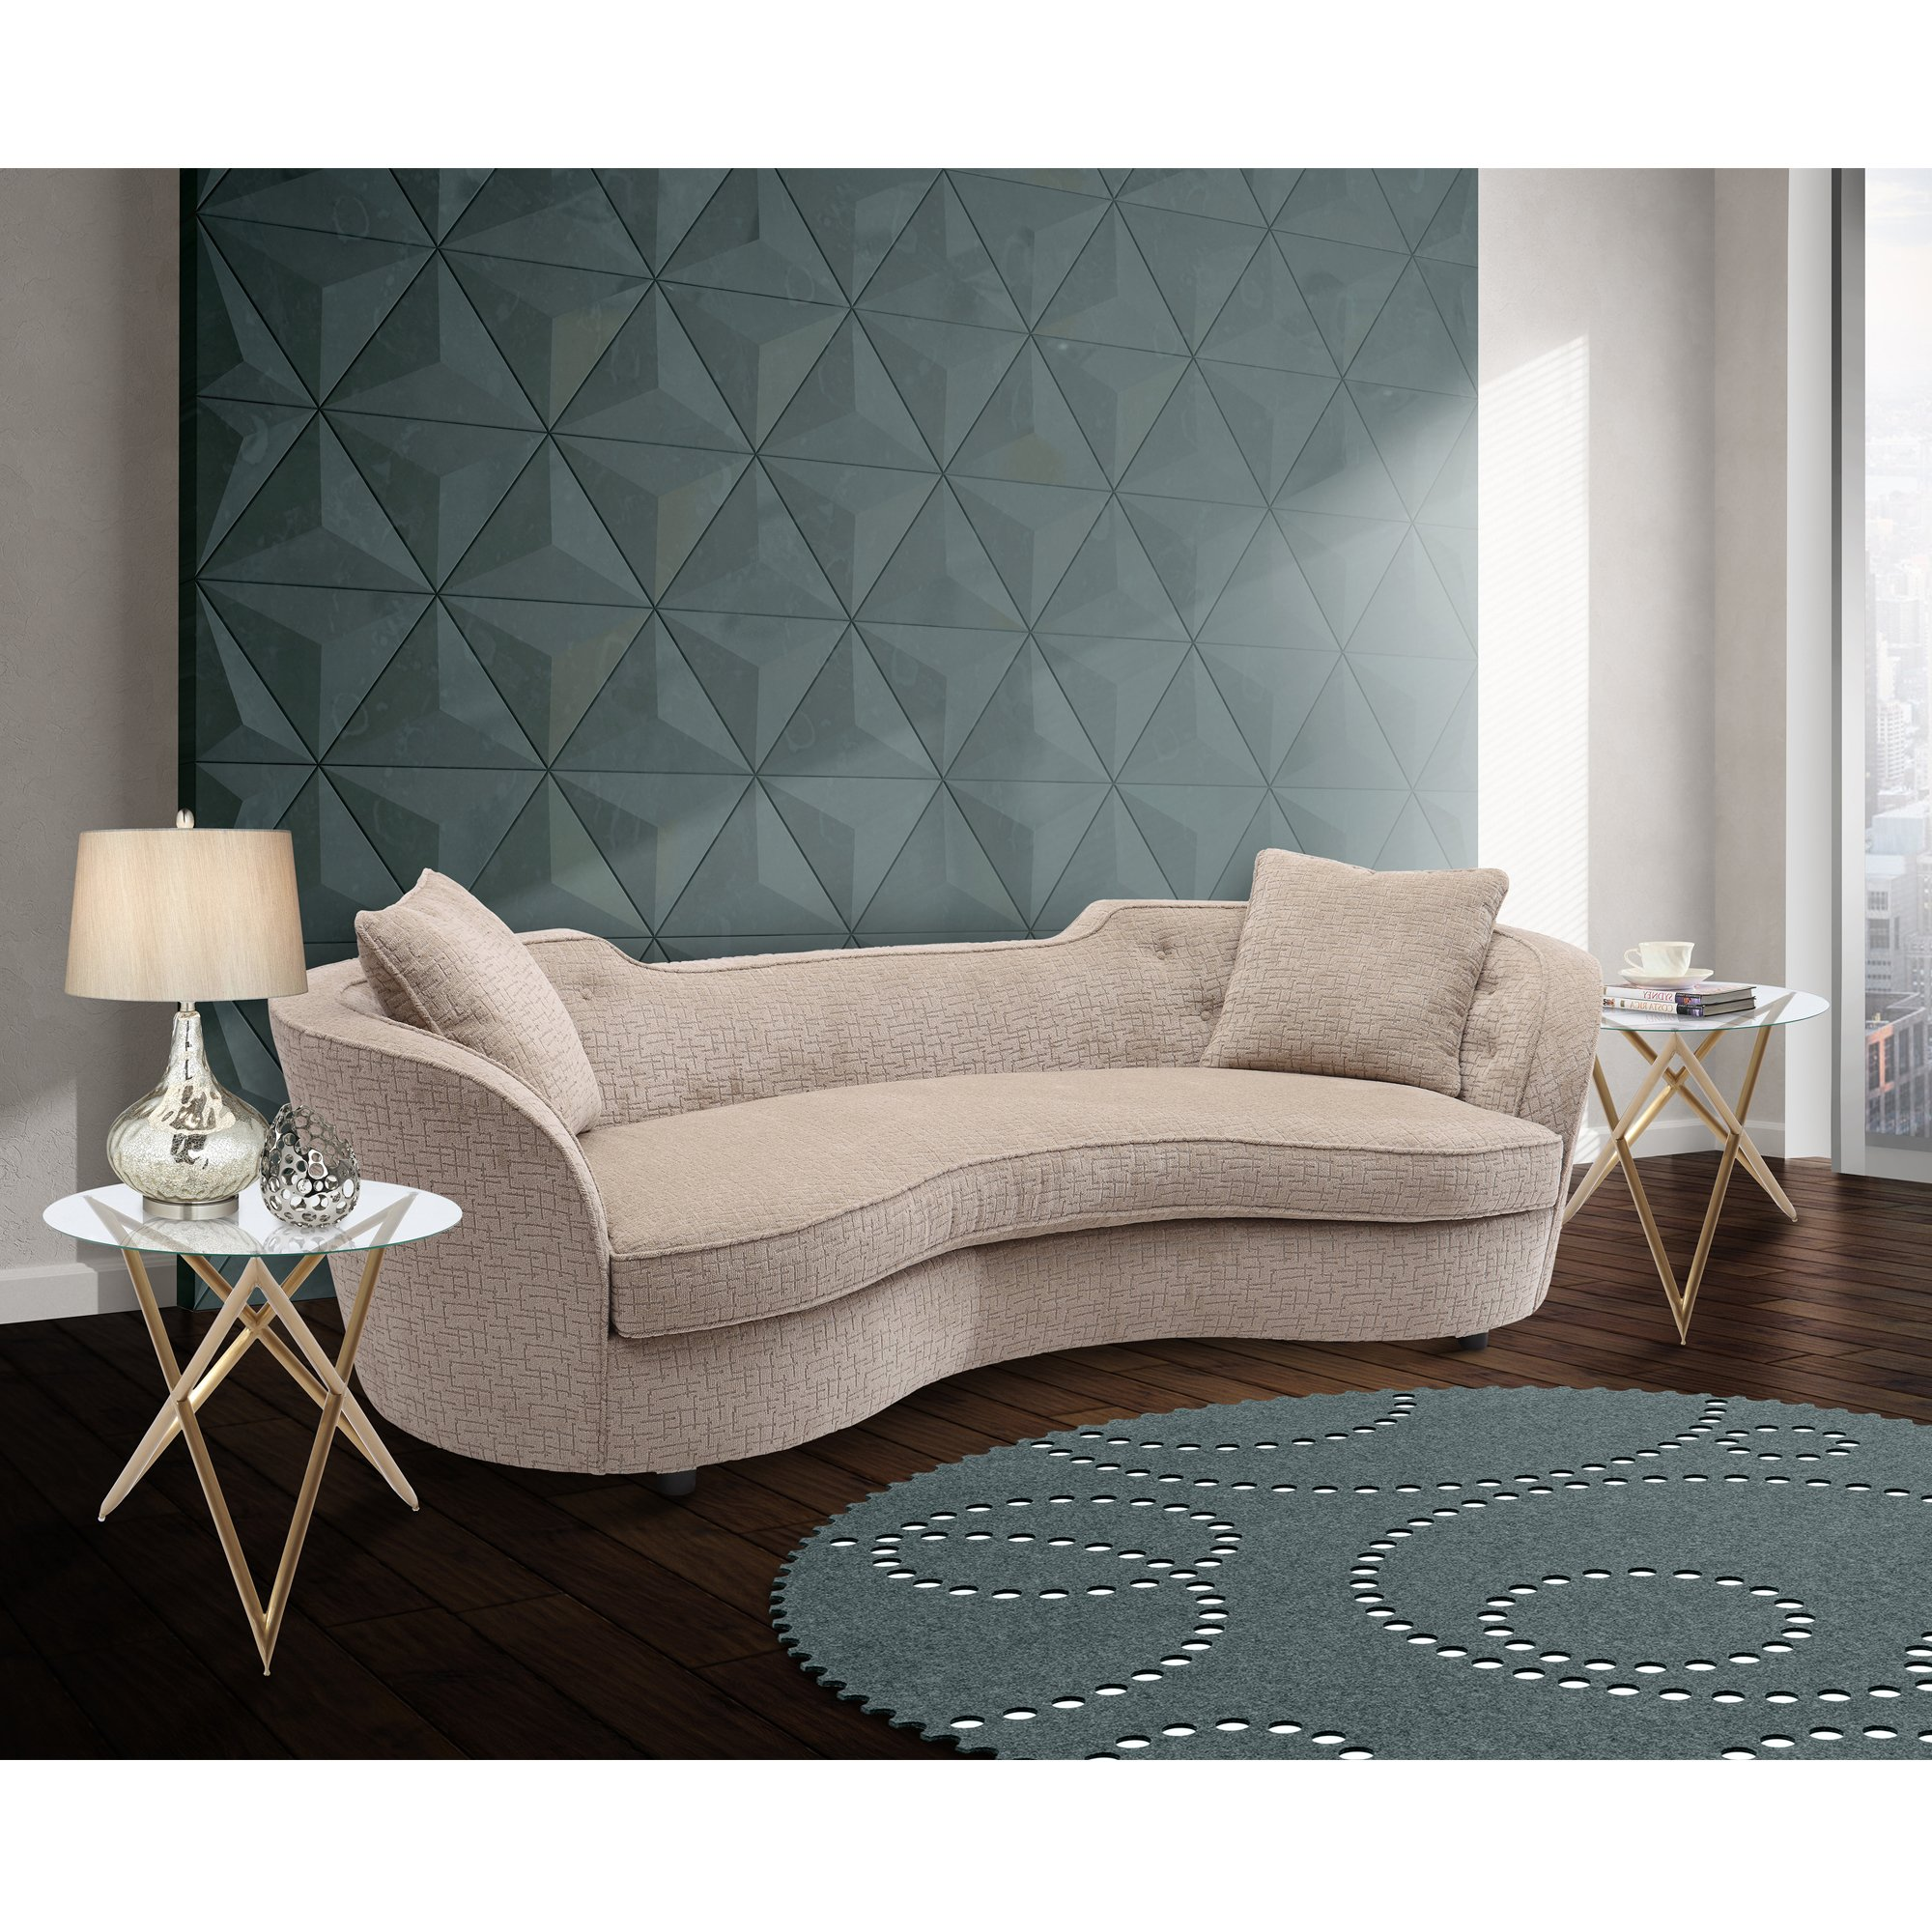 Armen Living Palisade Sofa in Sand Fabric and Black Wood Finish by Armen Living